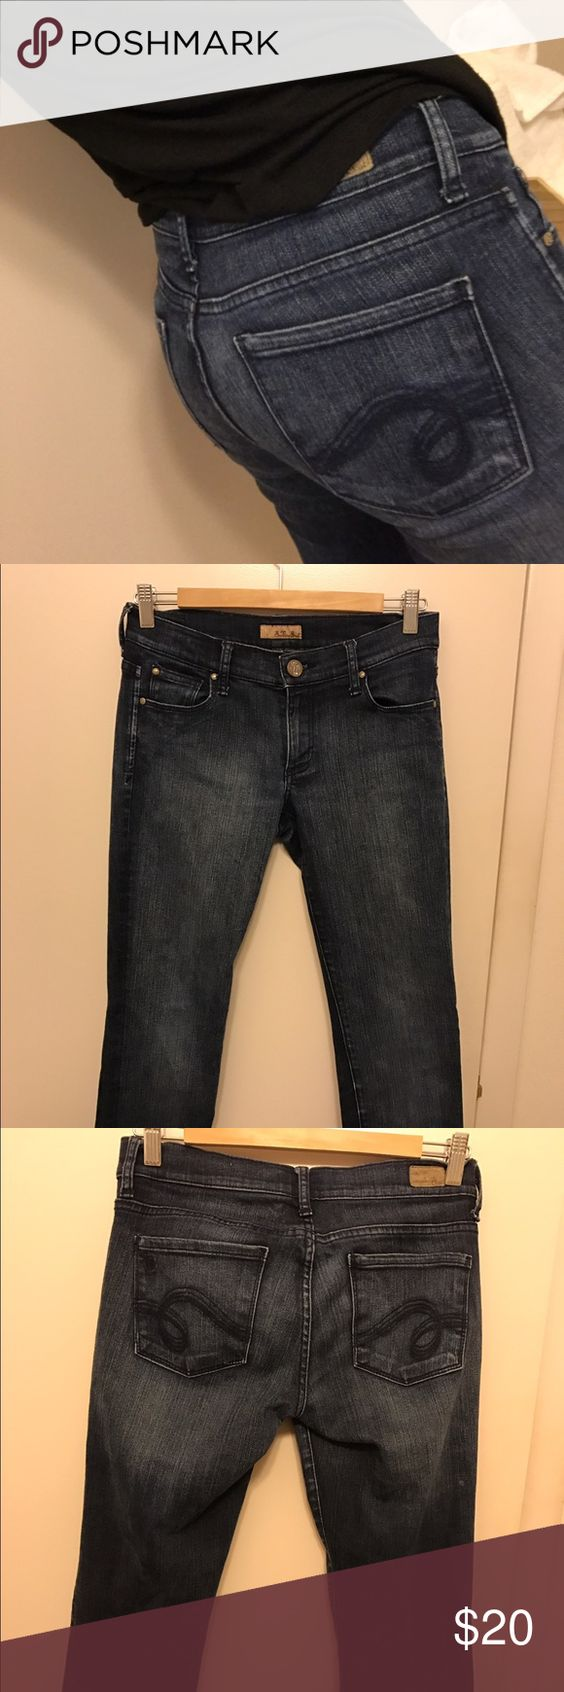 See thru soul jeans See thru soul jeans bought at Nordstrom. Good condition, no stains. Very comfortable and casual Jeans Skinny